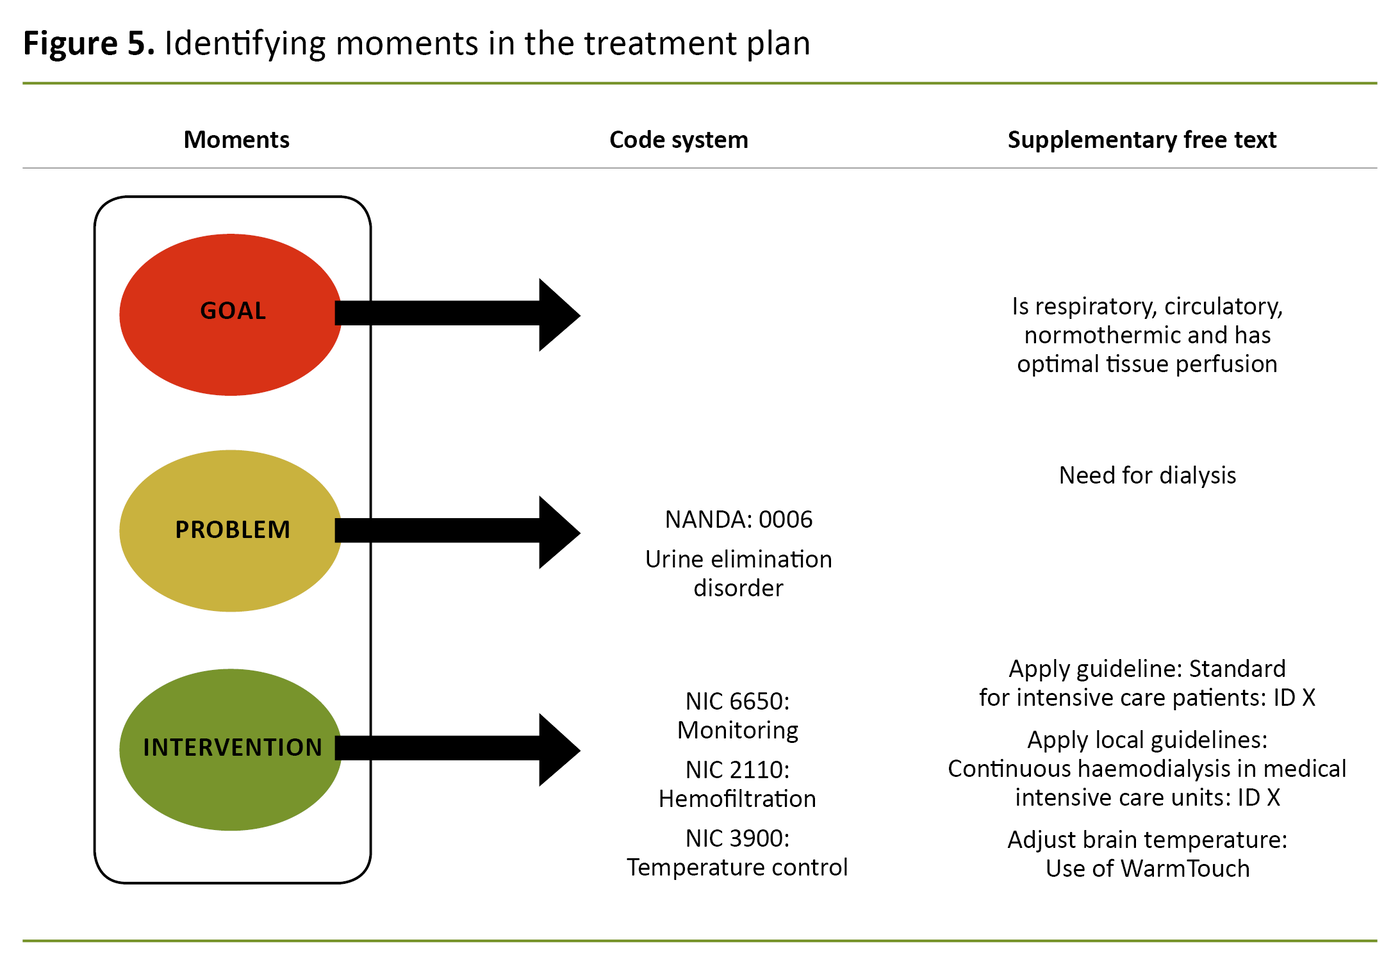 Figure 5. Identifying moments in the treatment plan